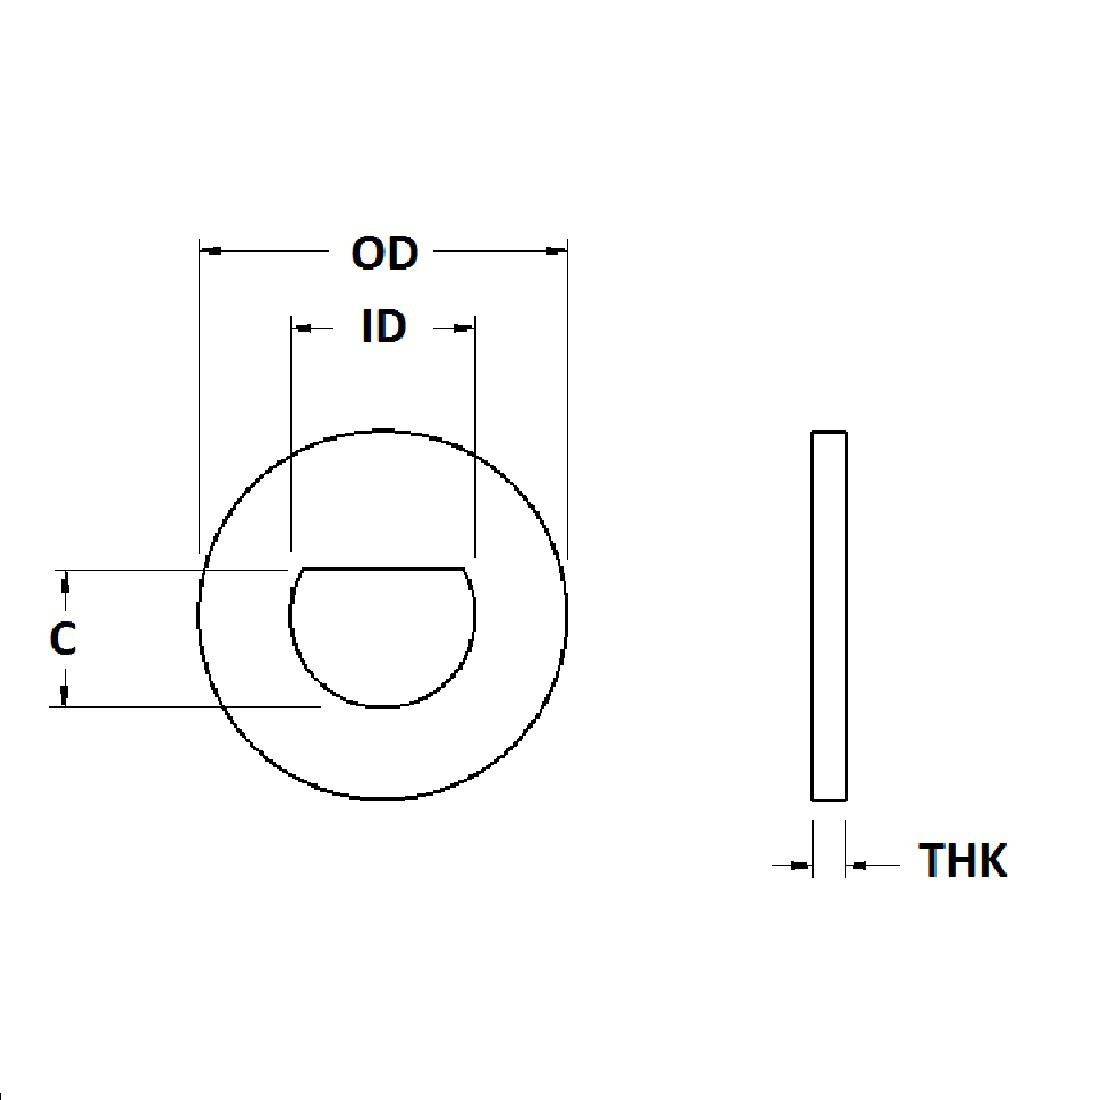 D-Shaped ID Washer - 1.015 ID, 2.062 OD, 0.062 Thick, Stainless - 300 Series